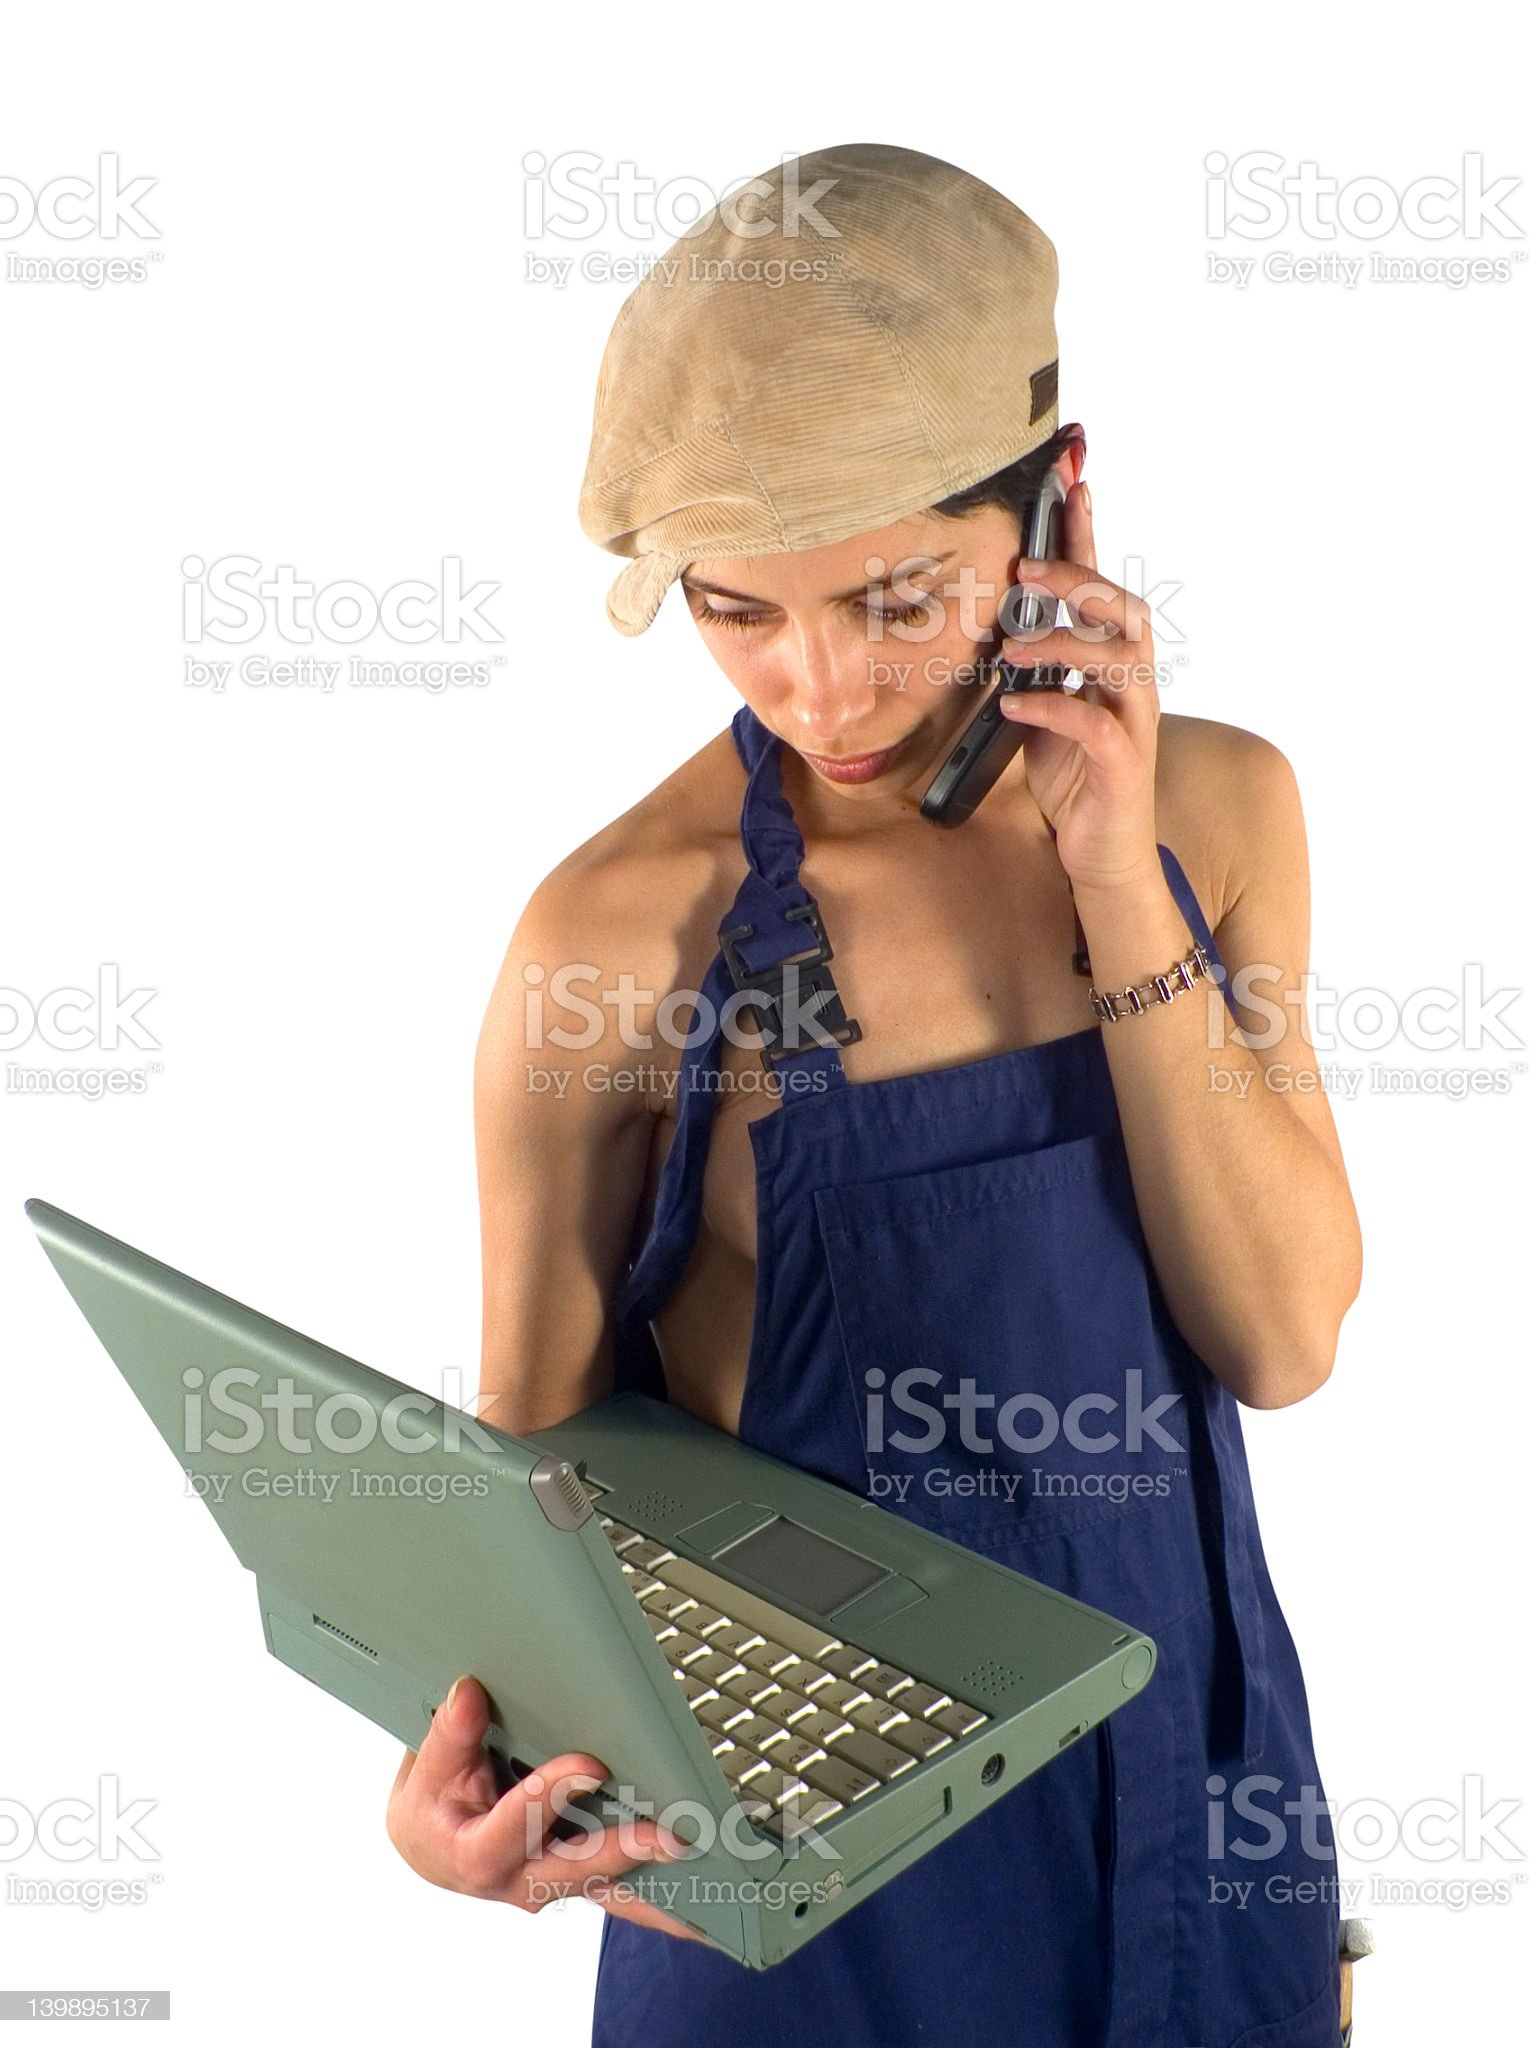 Laptop and phone communication royalty-free stock photo